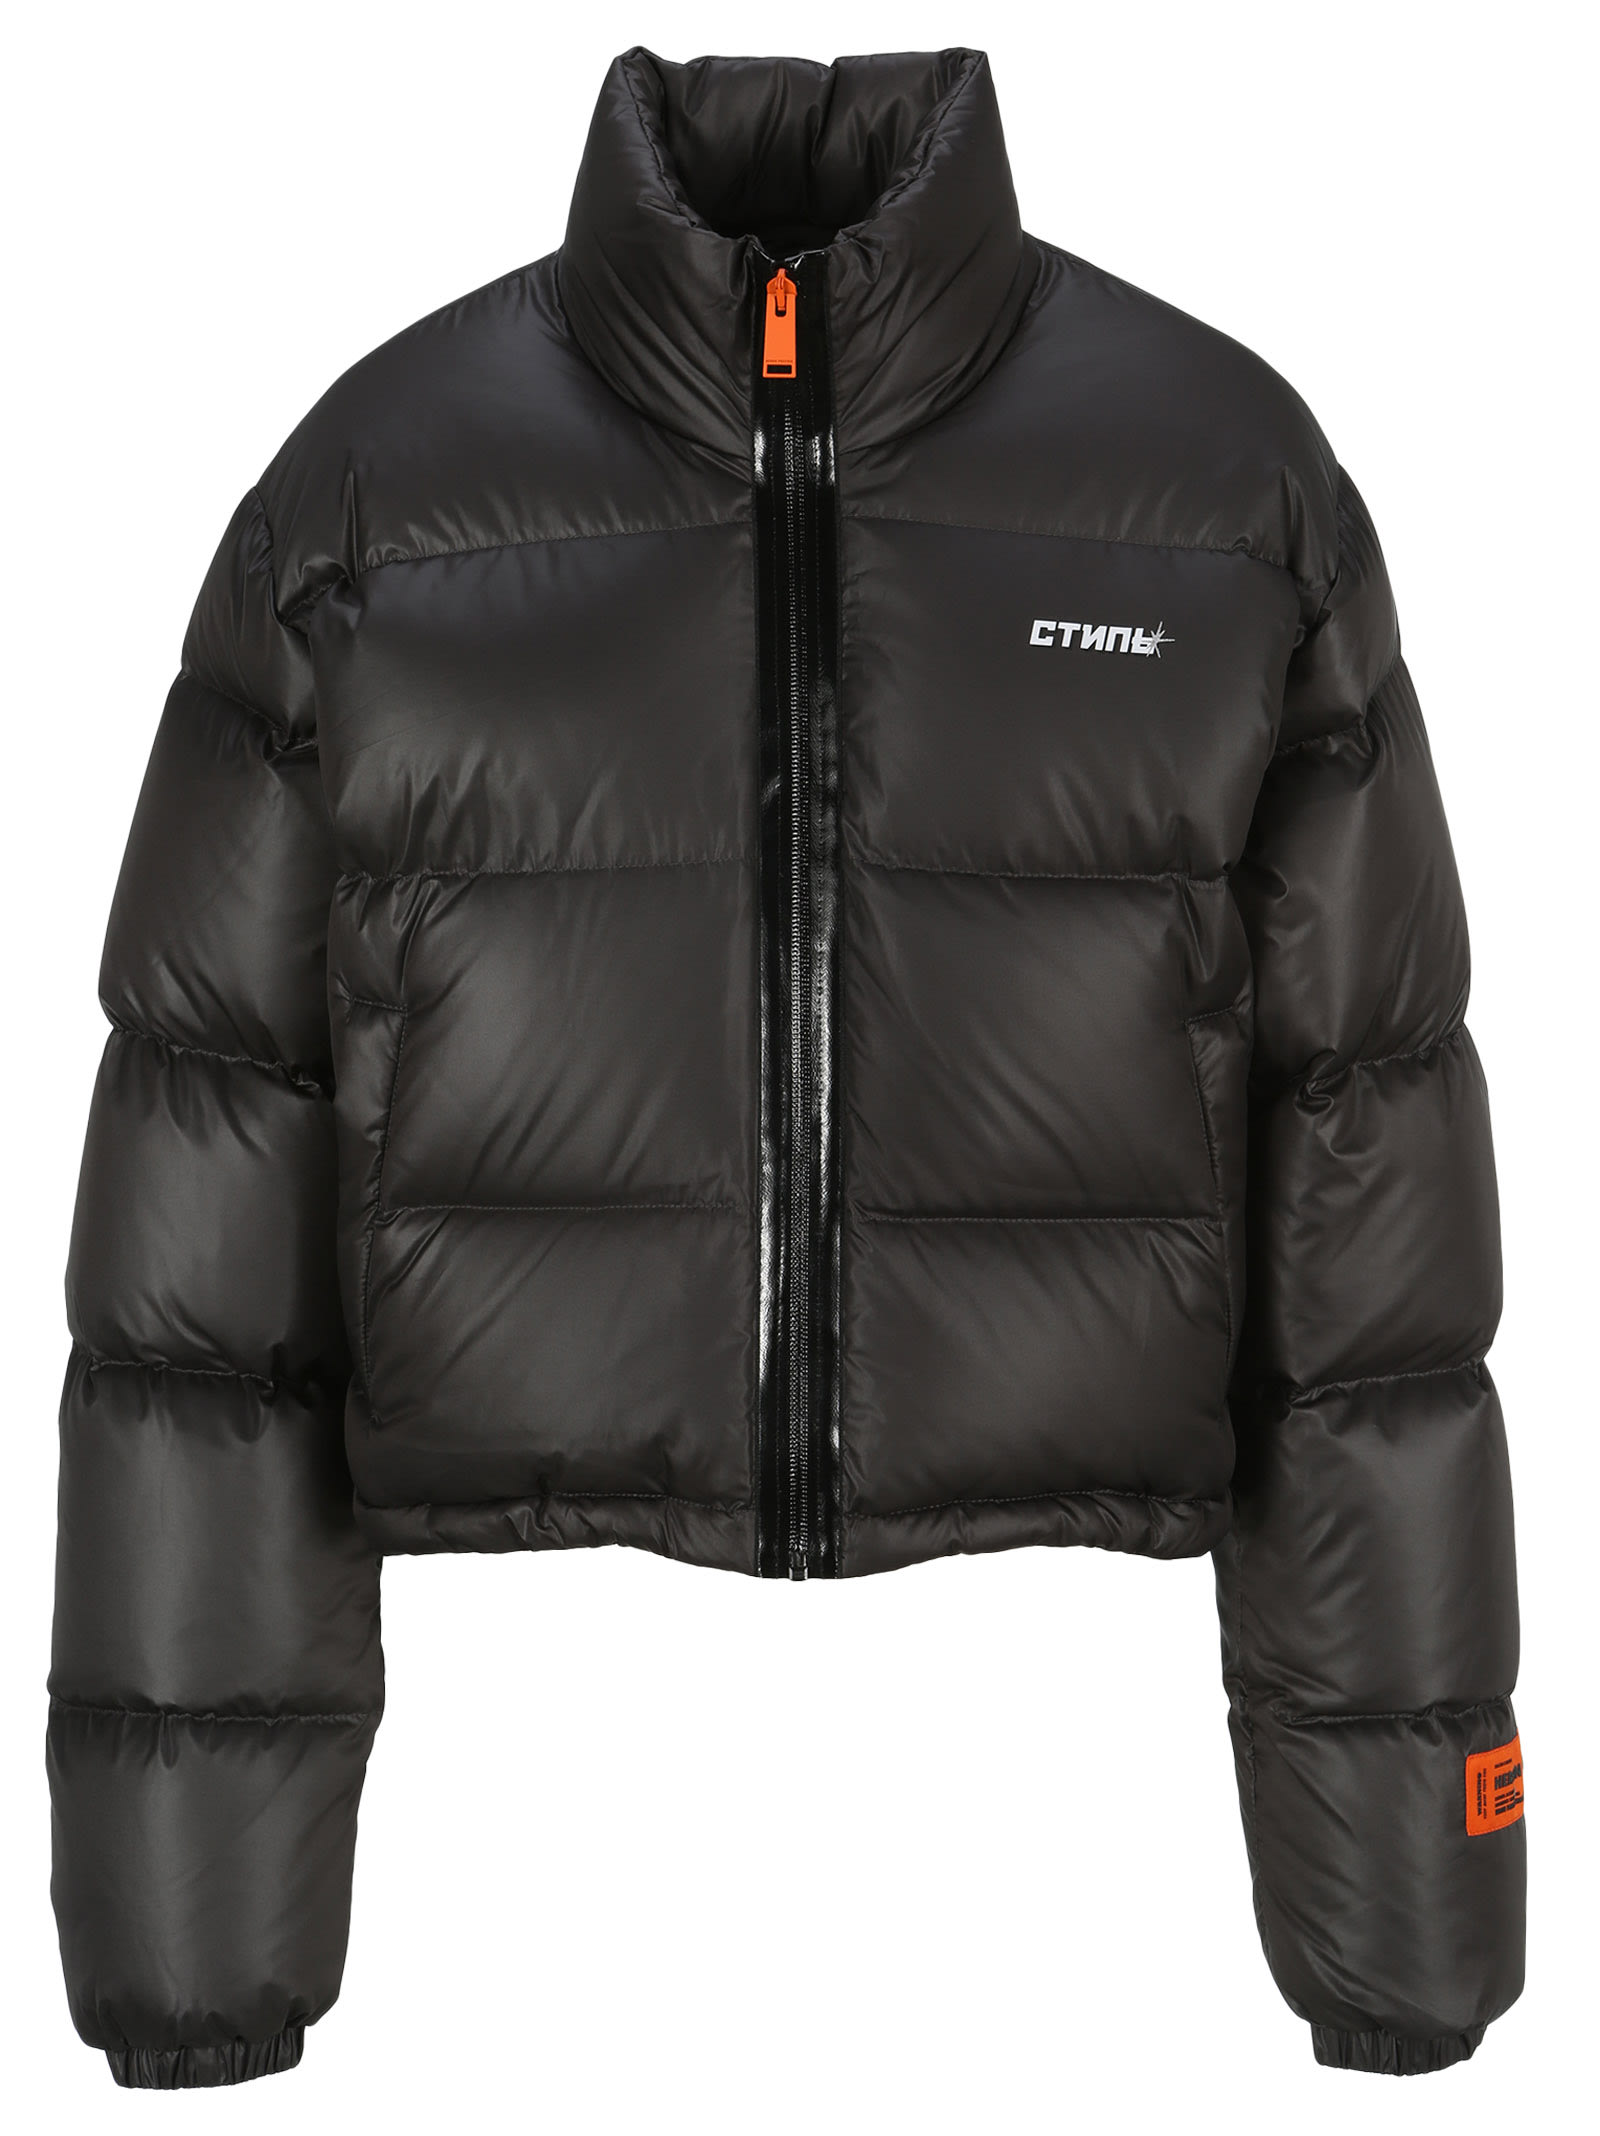 Heron Preston Cropped Puffer Jacket